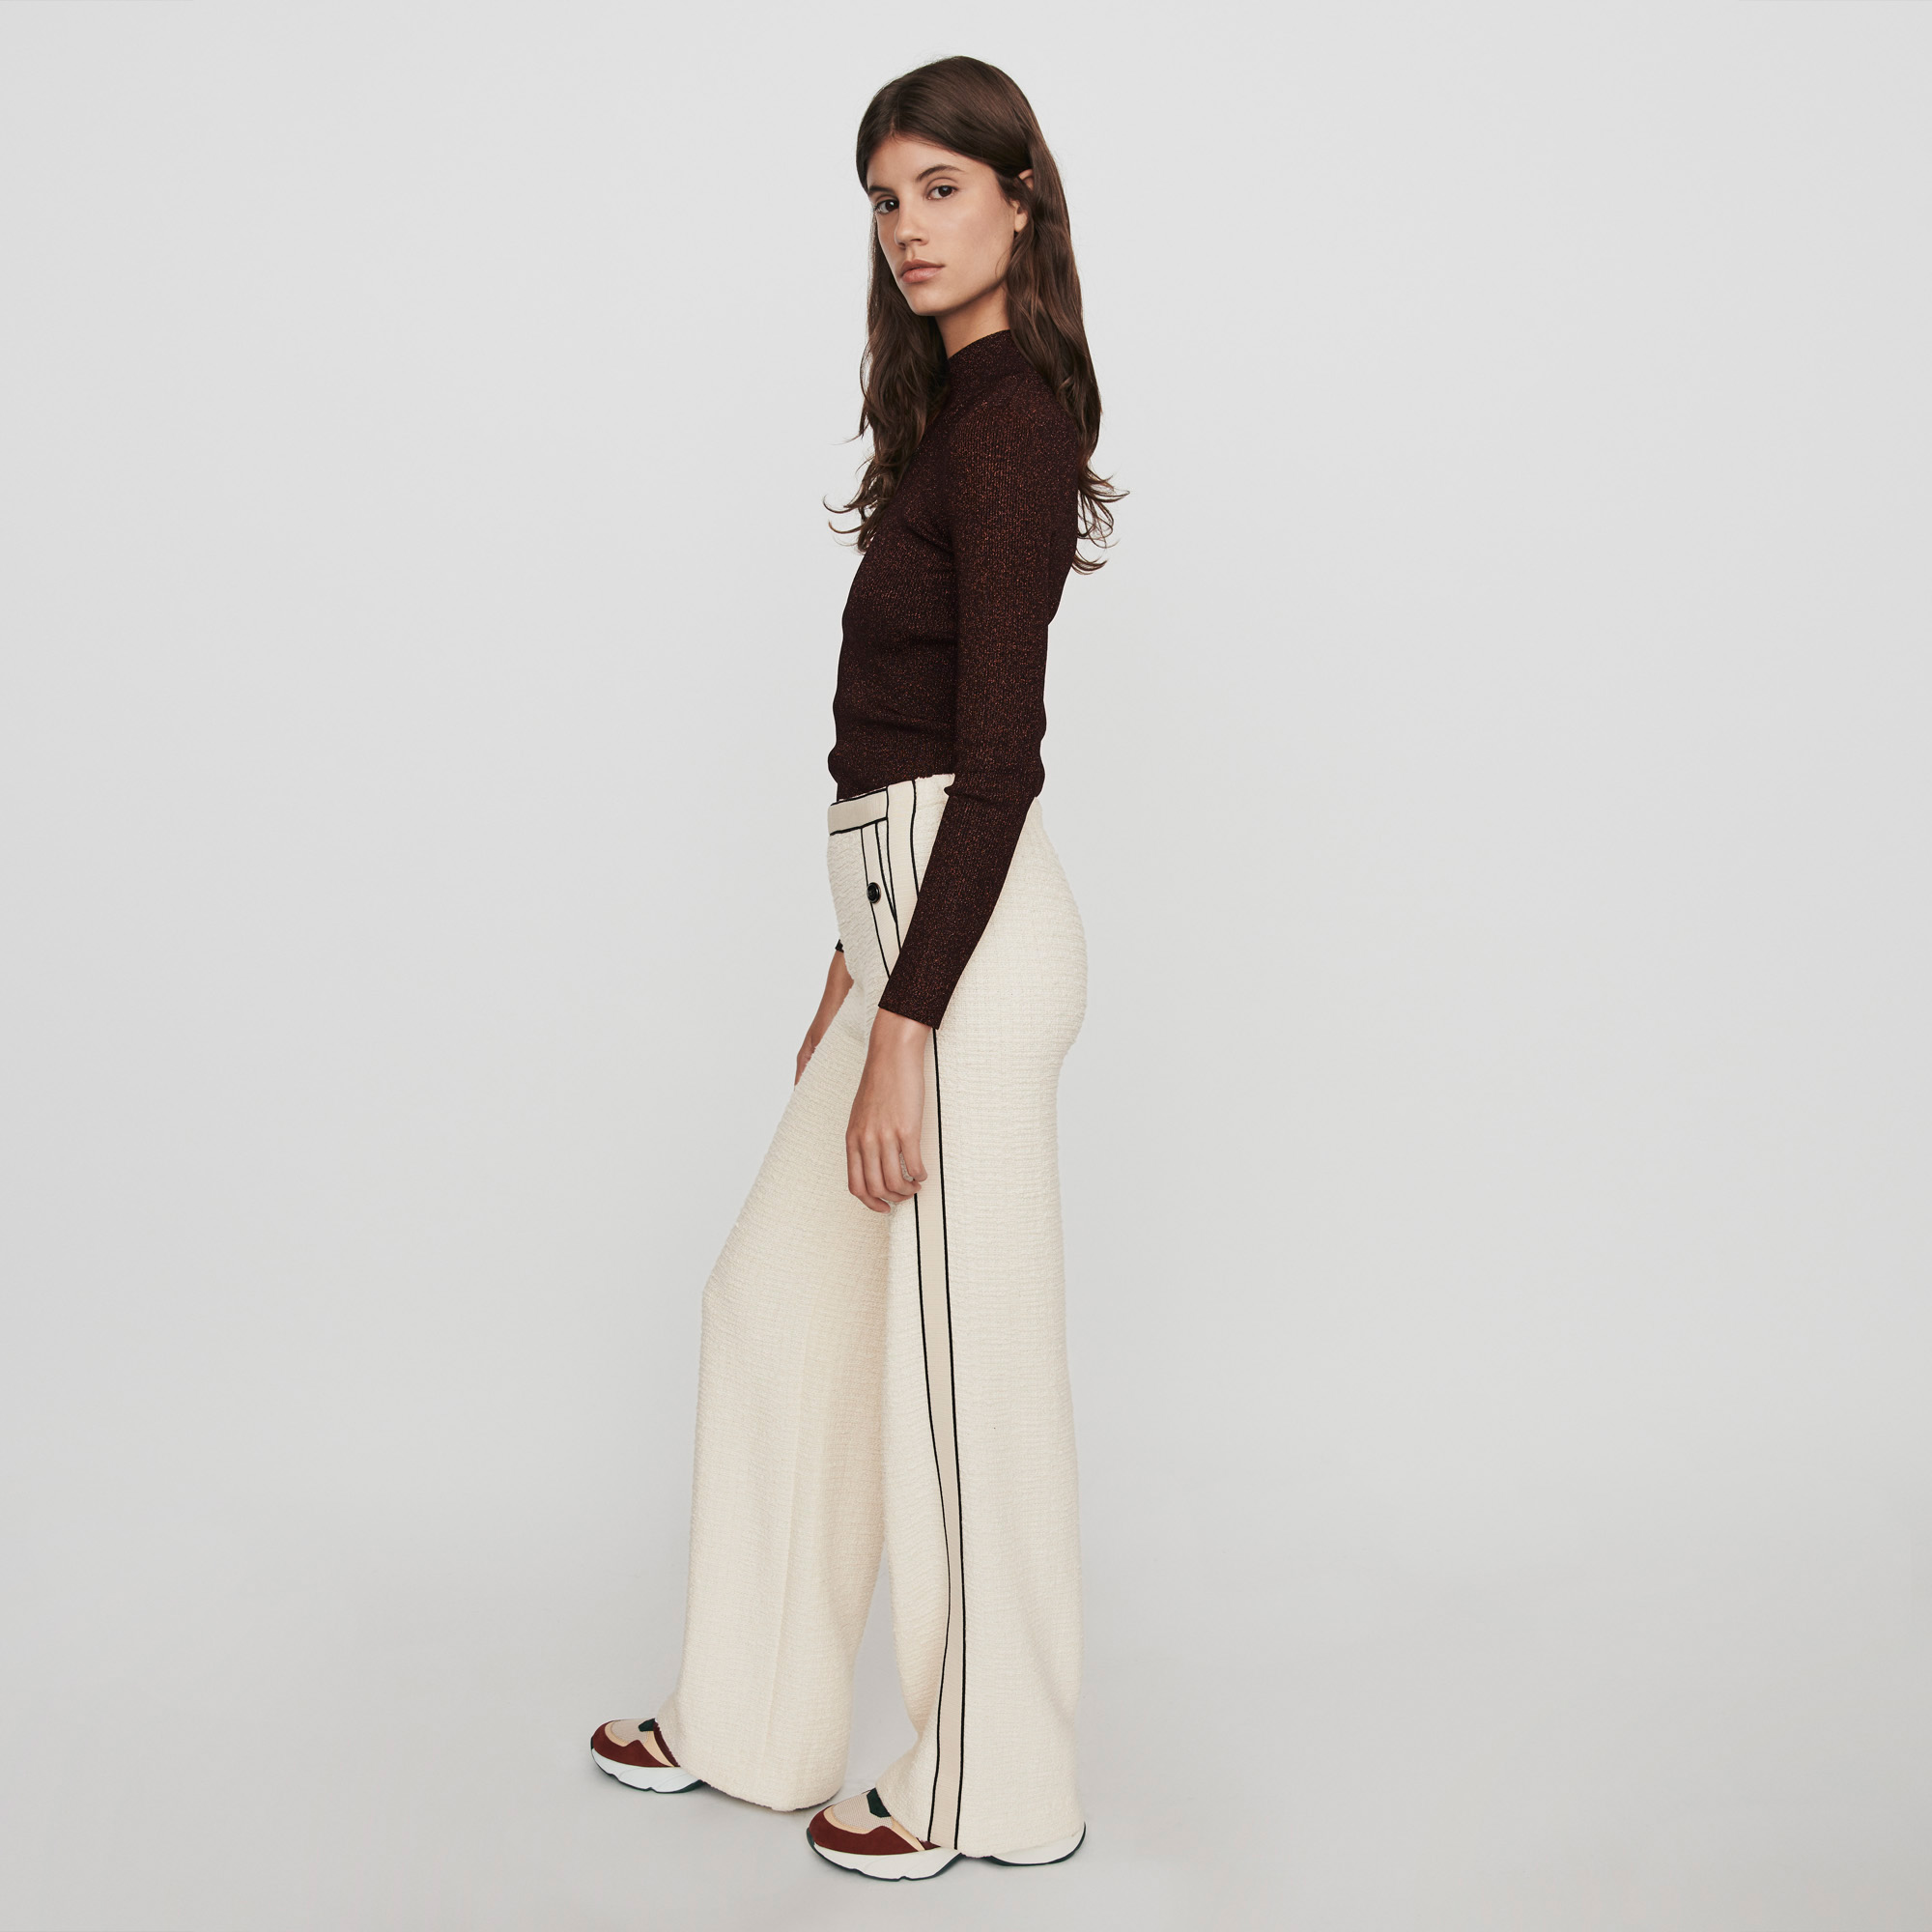 Tweed Style Contrast Wide Leg Pants - Ecru